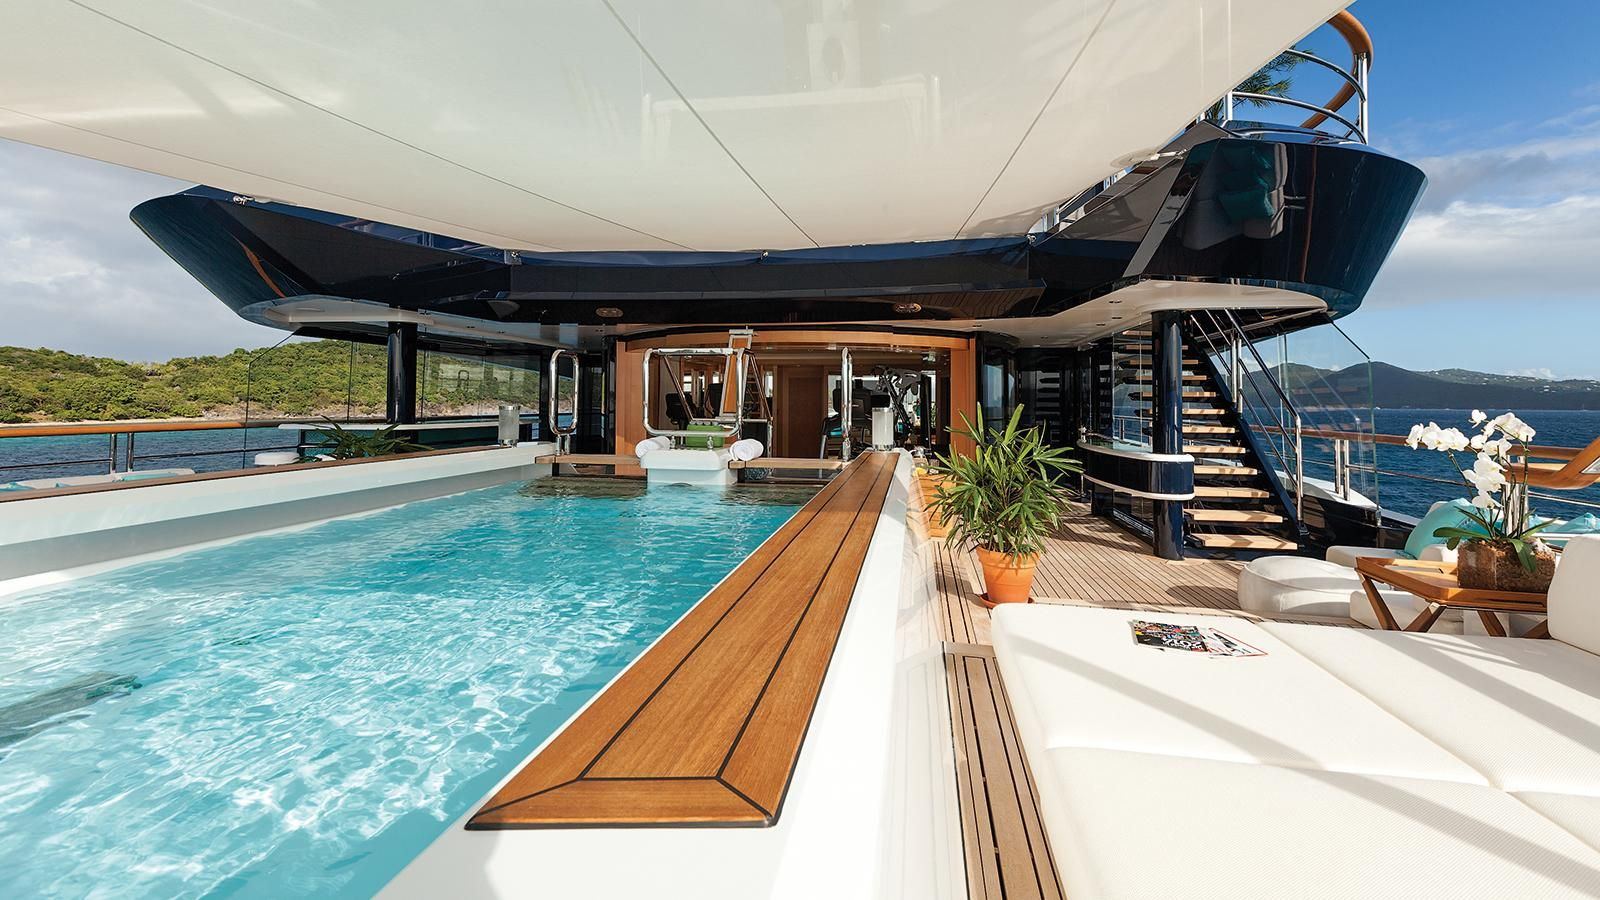 6 of the best superyacht spas - Solandge Yacht Pool Spa